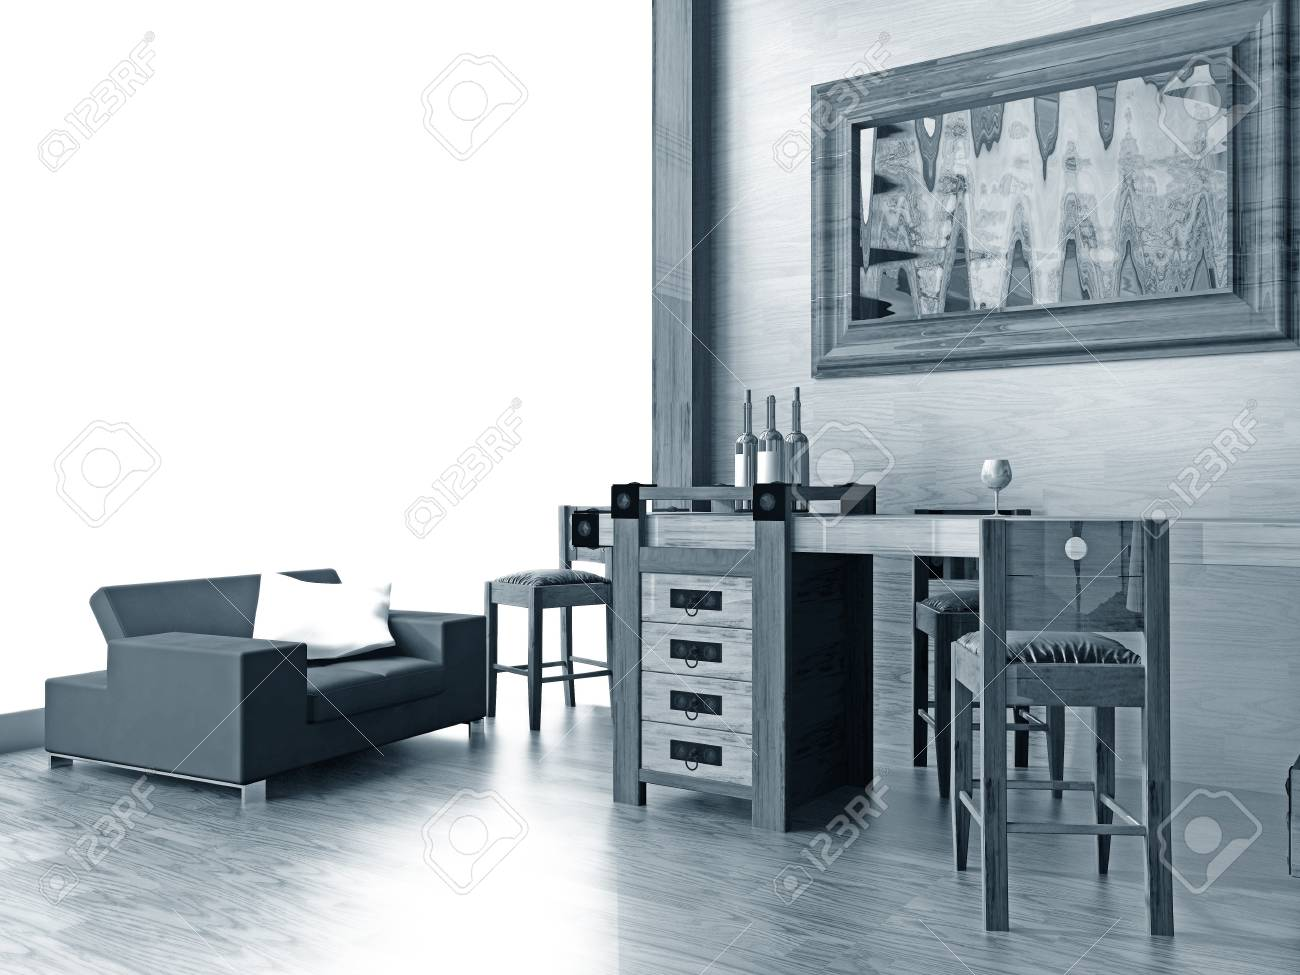 Bar in a hall of hotel 3d image Stock Photo - 4226837